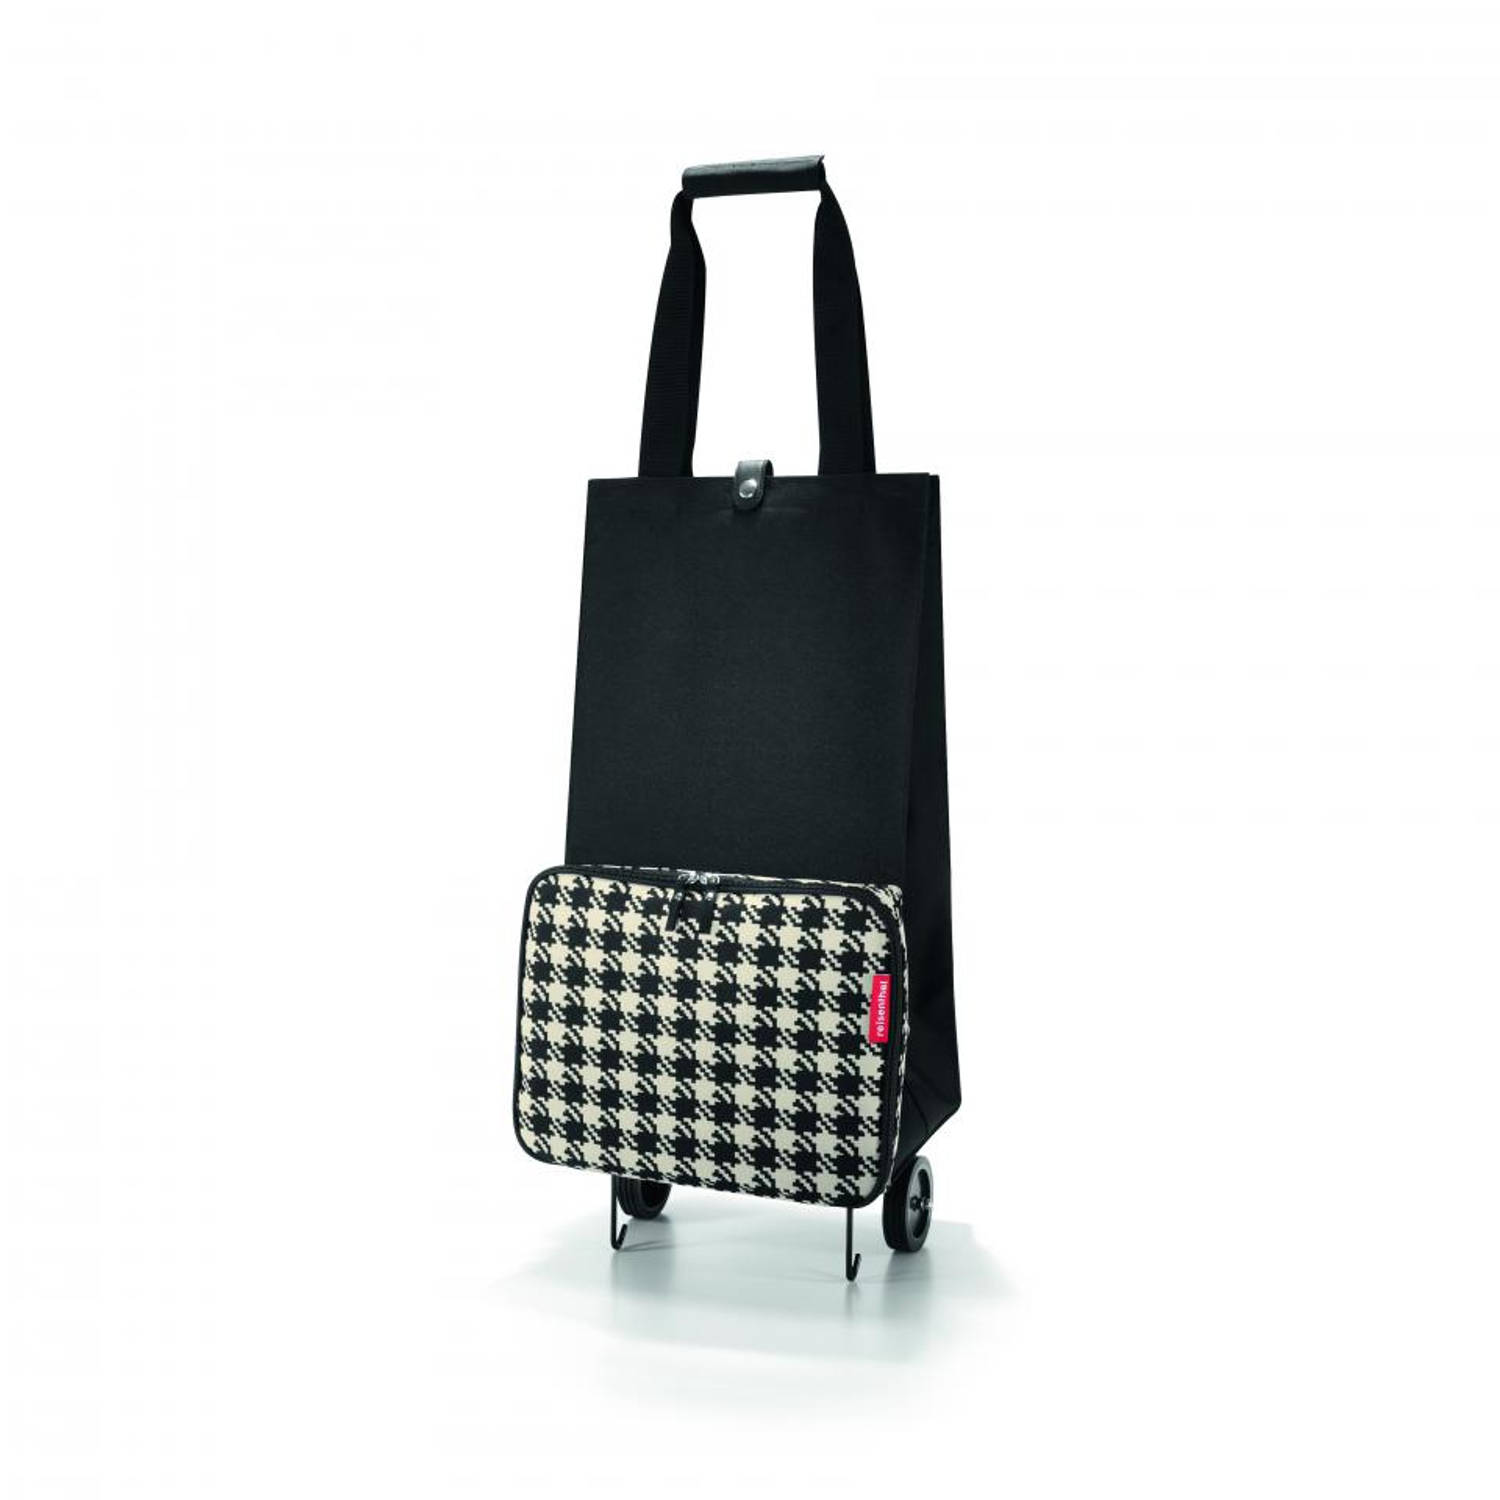 Reisenthel opvouwbare trolley - Fifties black - 30 liter